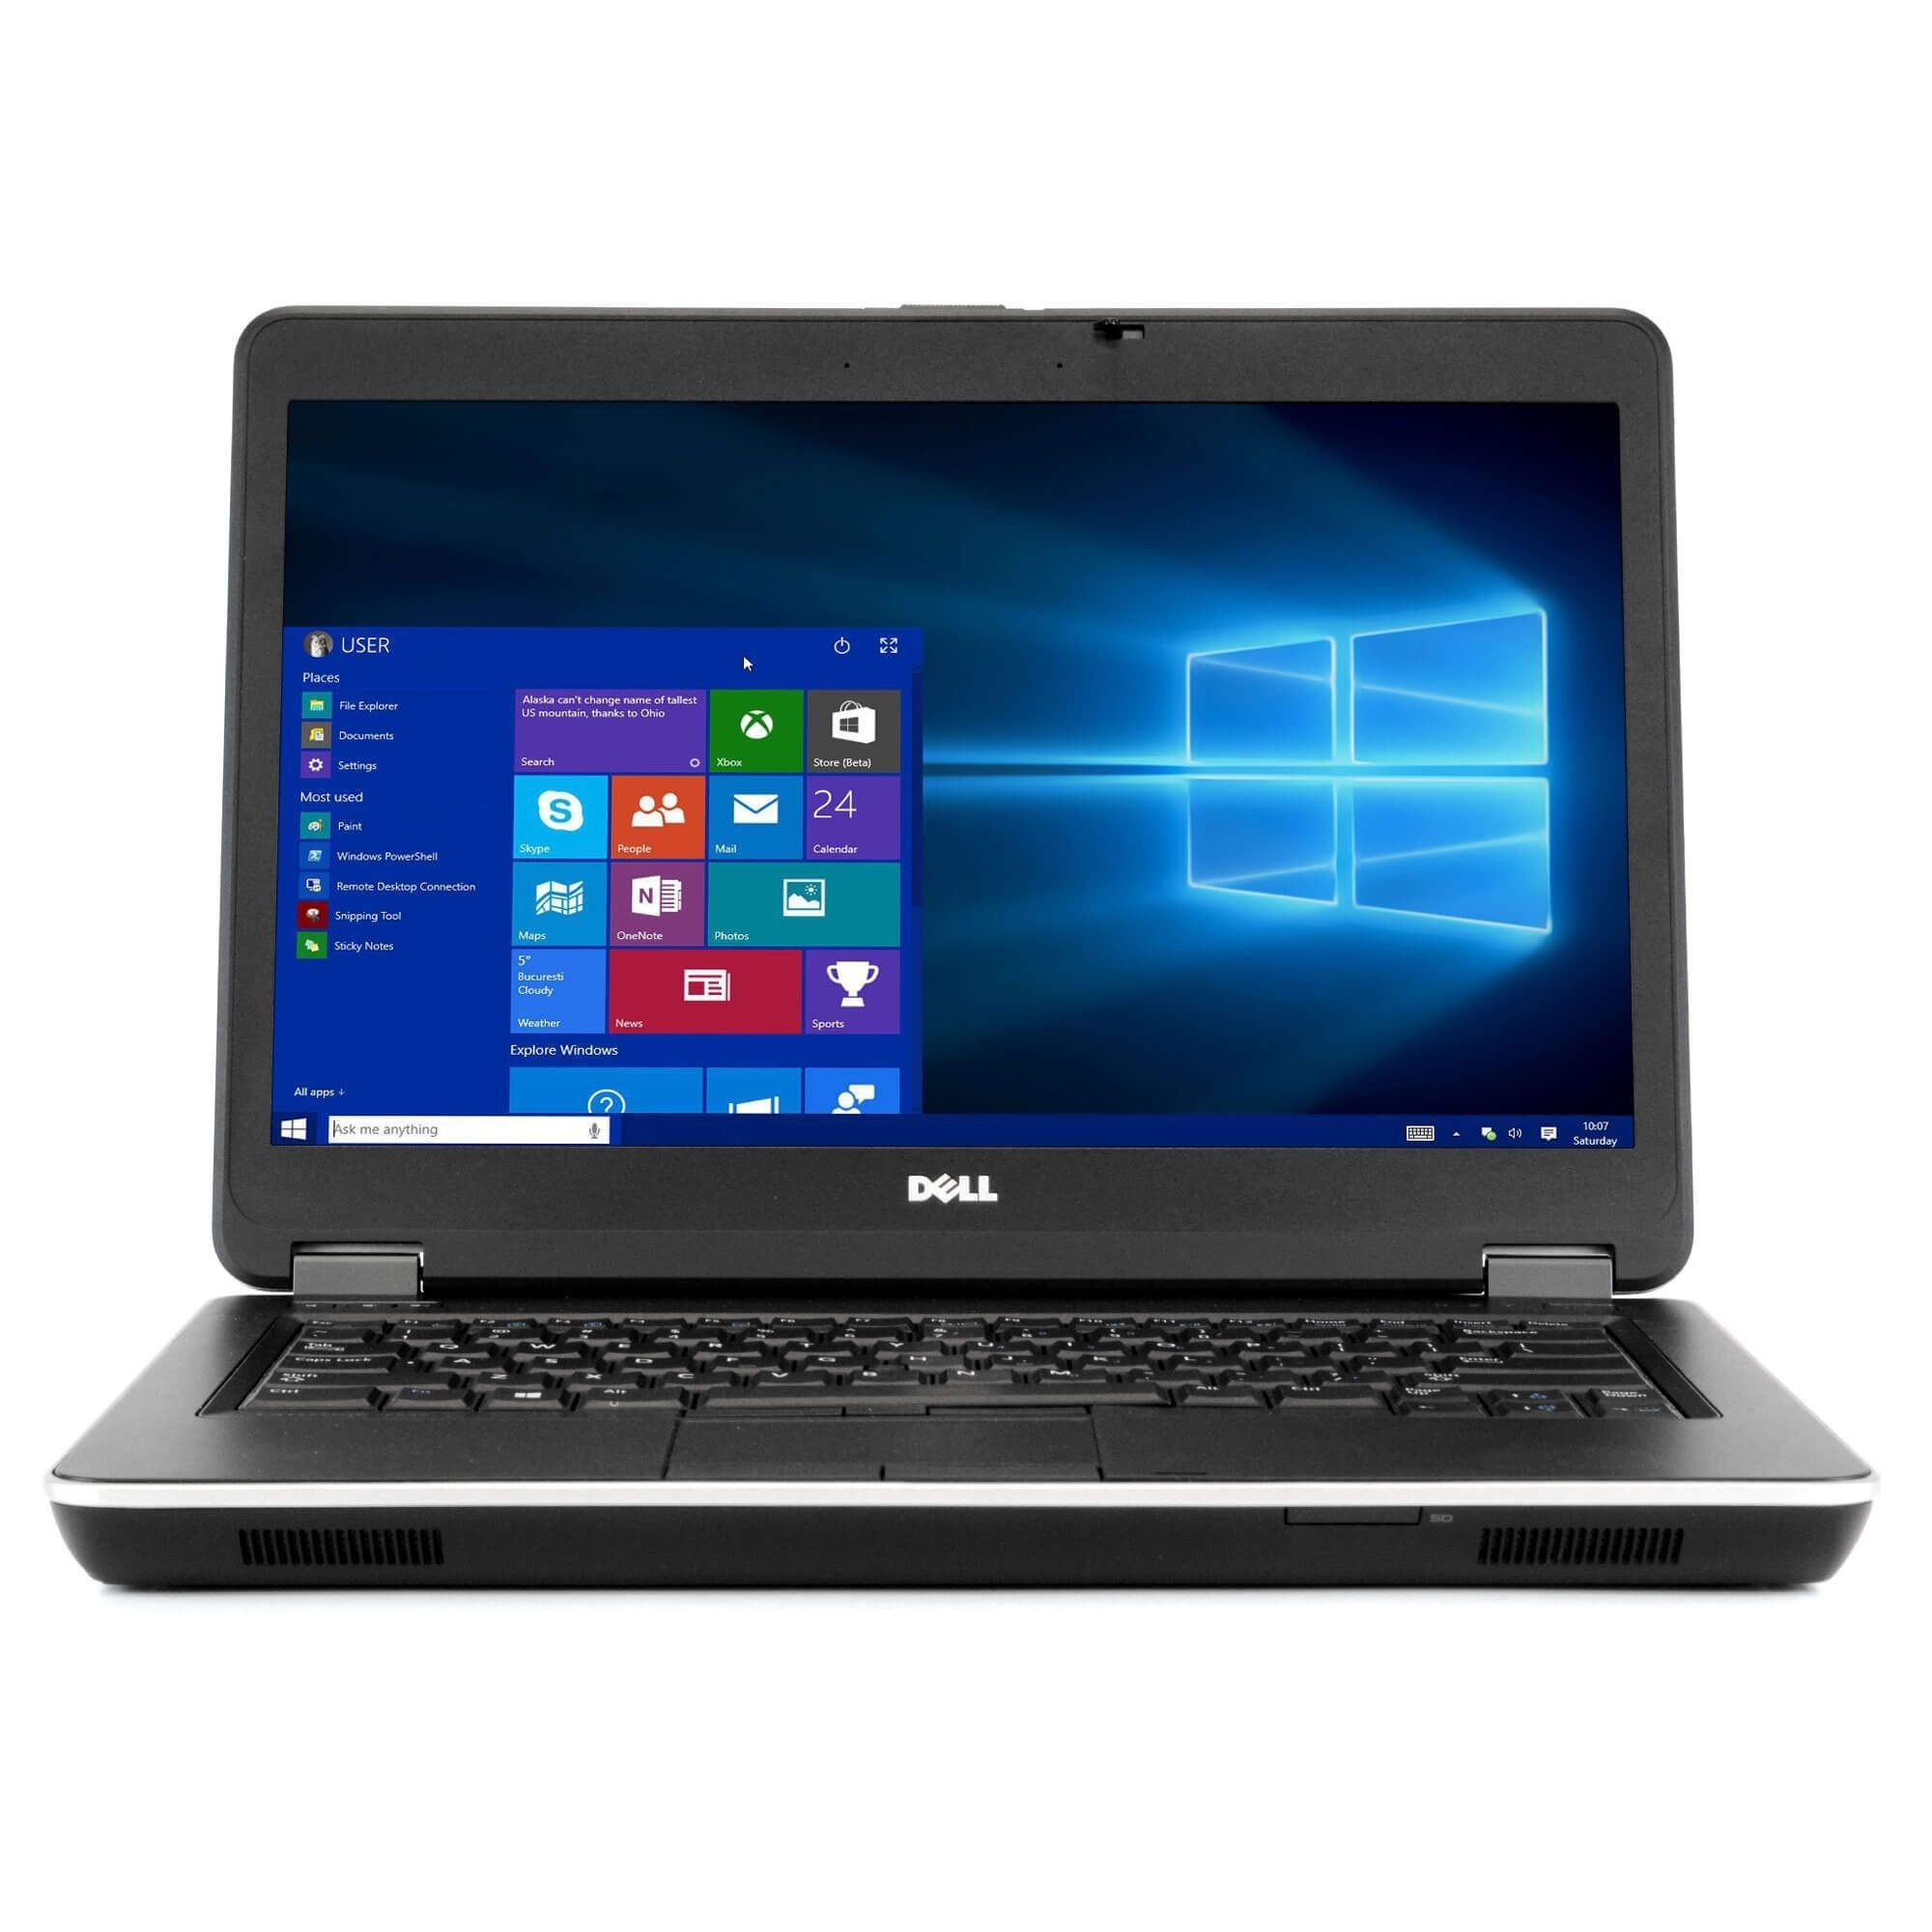 Refurbished laptops & desktops - Refurbished Dell Latitude E6440 (Core I5 4TH Gen/4GB/500GB/Webcam/14''/DOS)